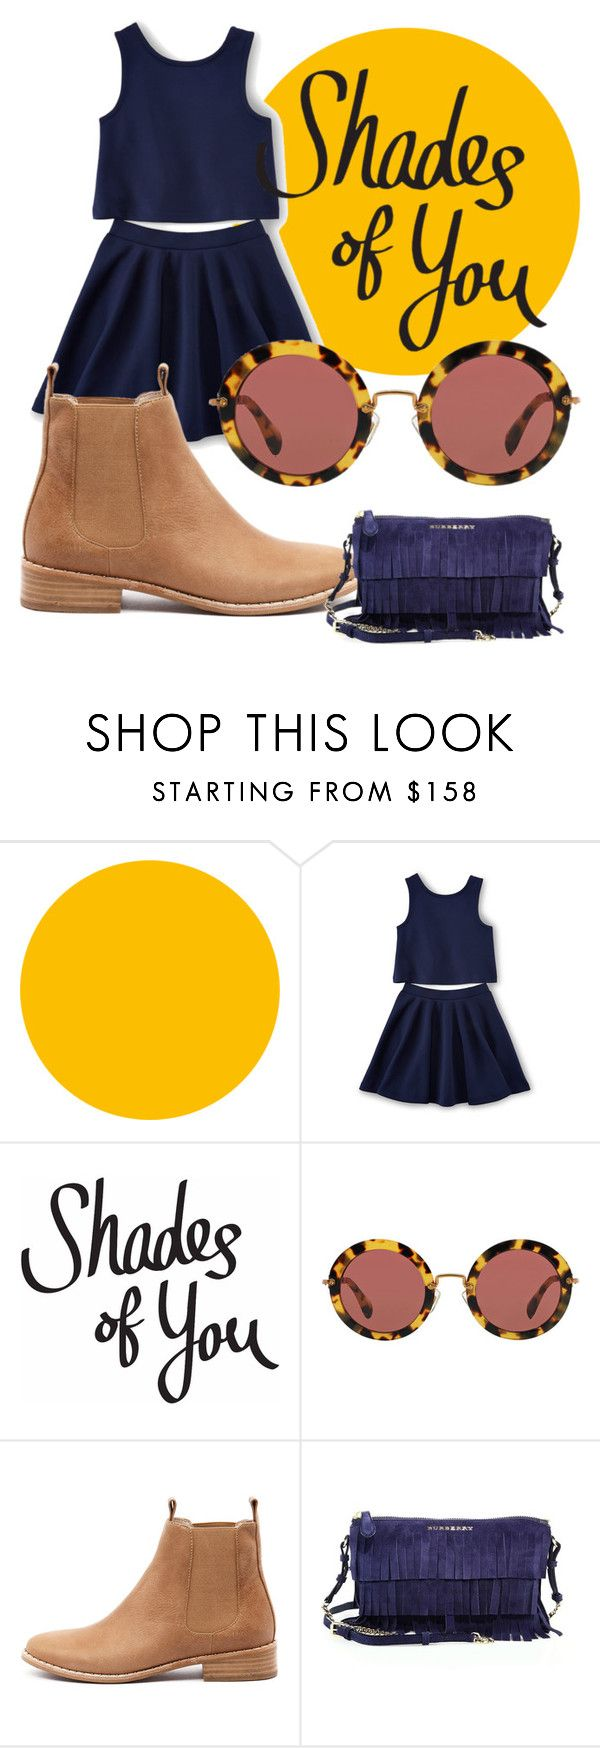 """""""Shades of You: Sunglass Hut Contest Entry"""" by dinah-lance ❤ liked on Polyvore featuring Miu Miu, Mollini, Burberry and shadesofyou"""